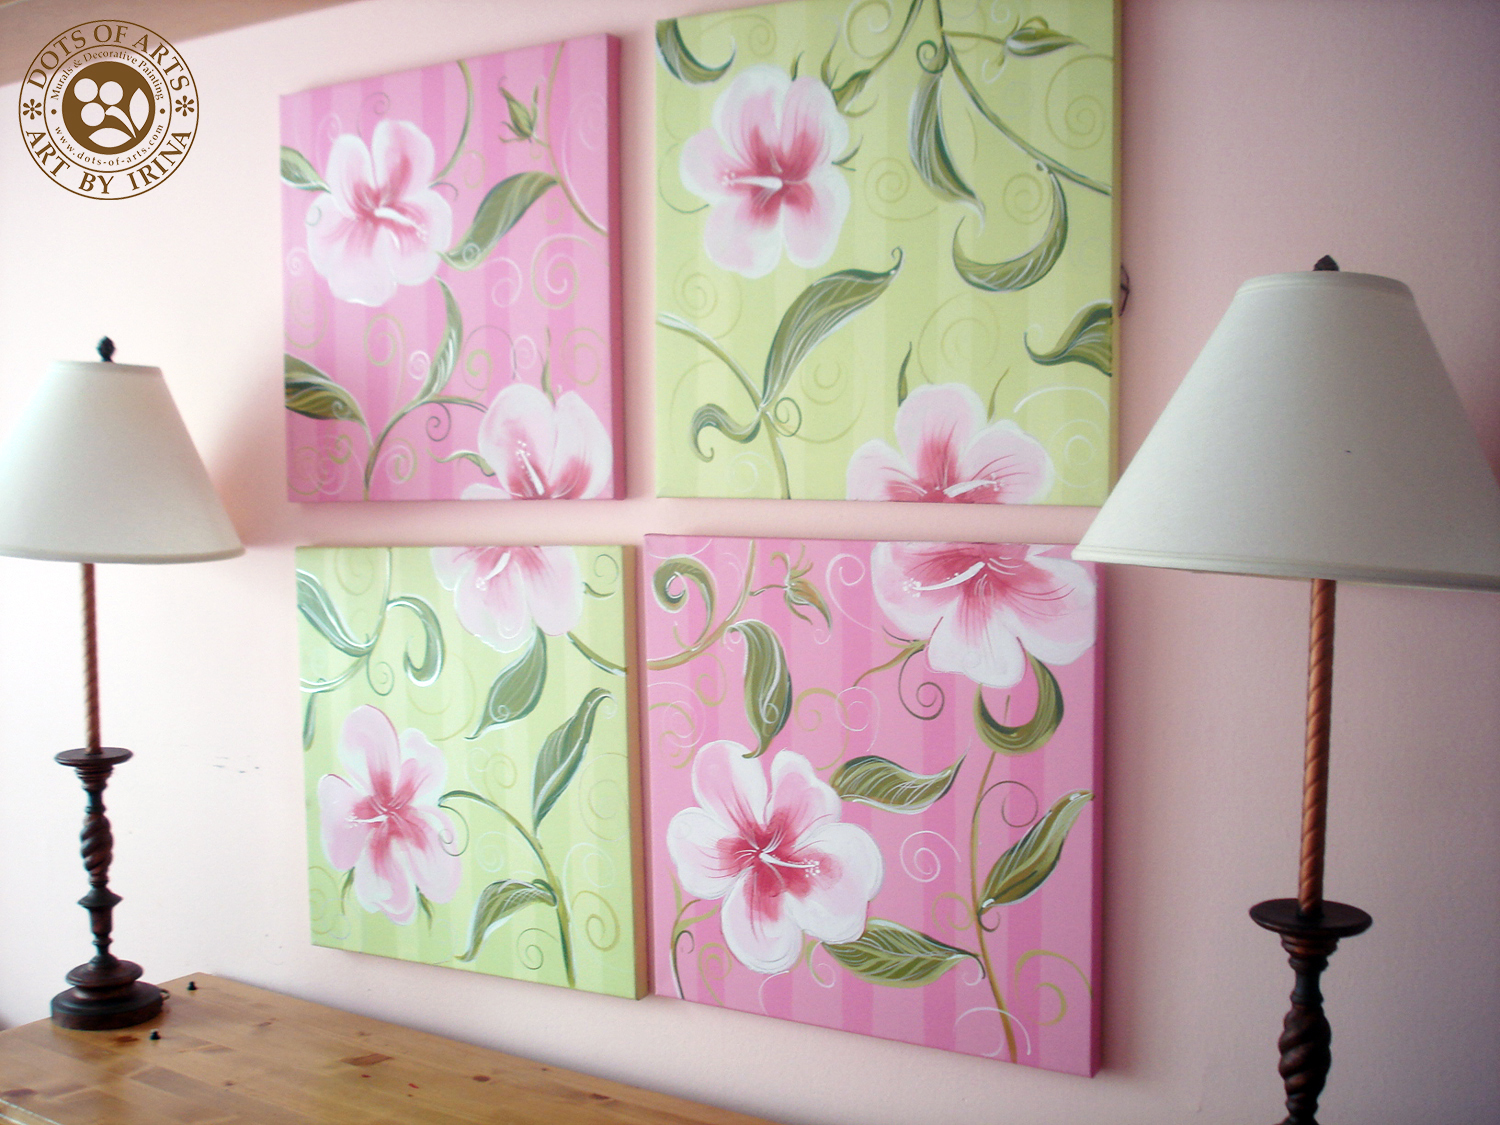 decorative-painting-canvases-custom-dots-of-arts-accessories-four-pink-green.jpg